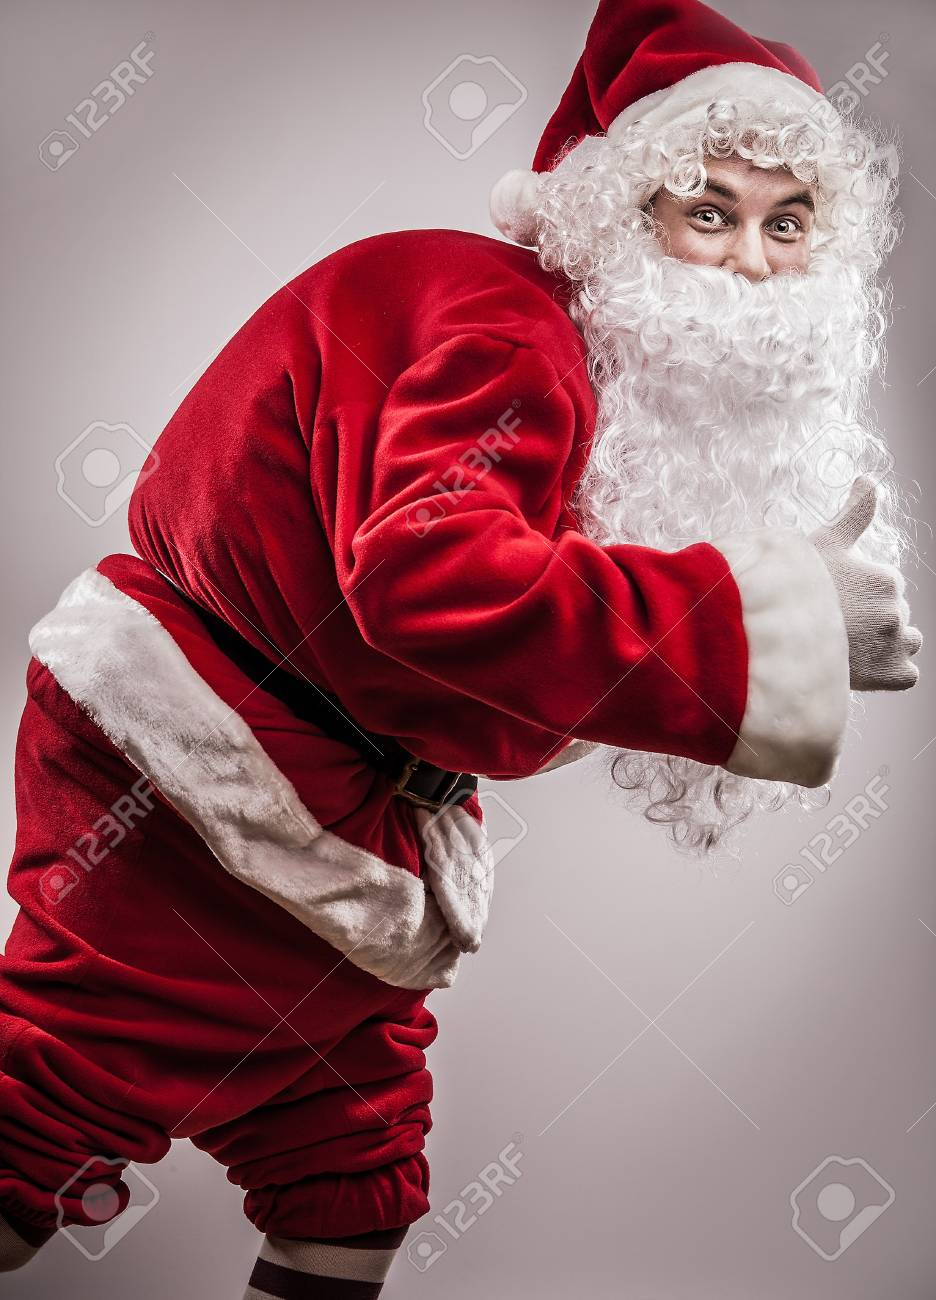 Santa Claus Stock Photo - 16958201